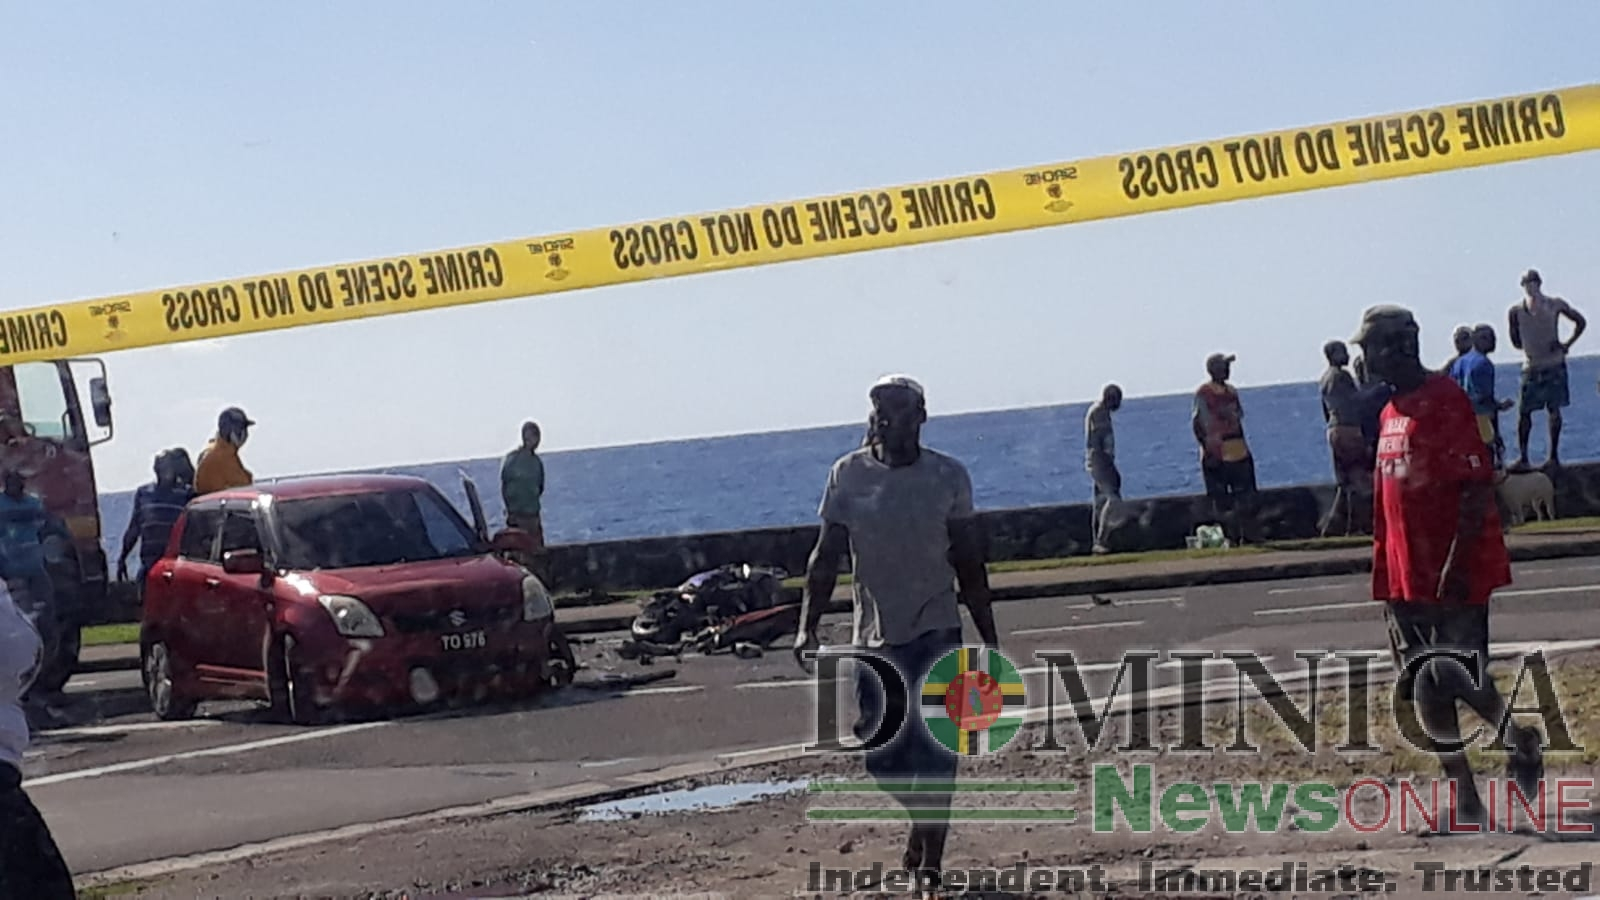 Police officer dies in traffic collision – Dominica News Online